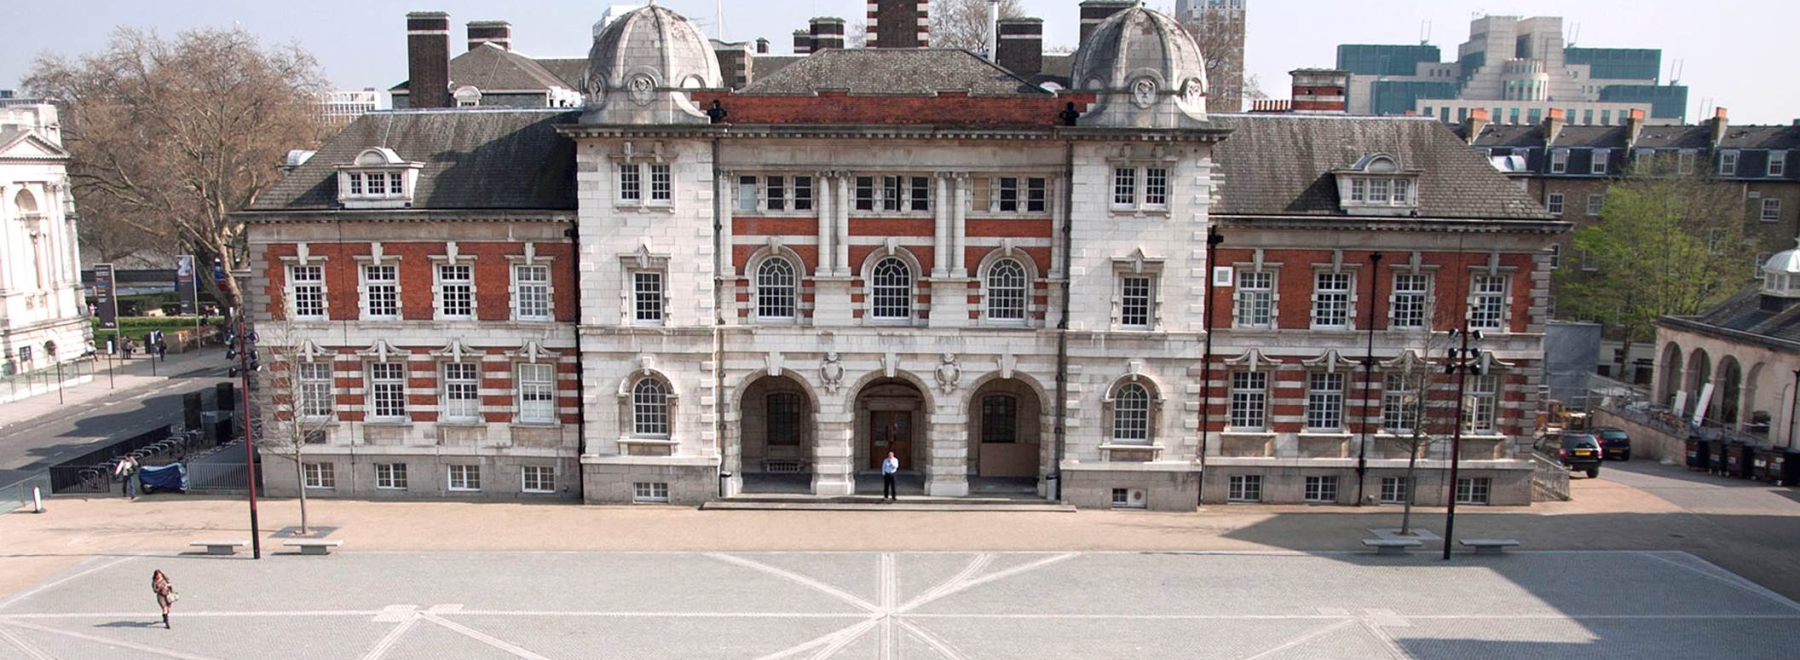 Chelsea College of Arts, University of the Arts London header